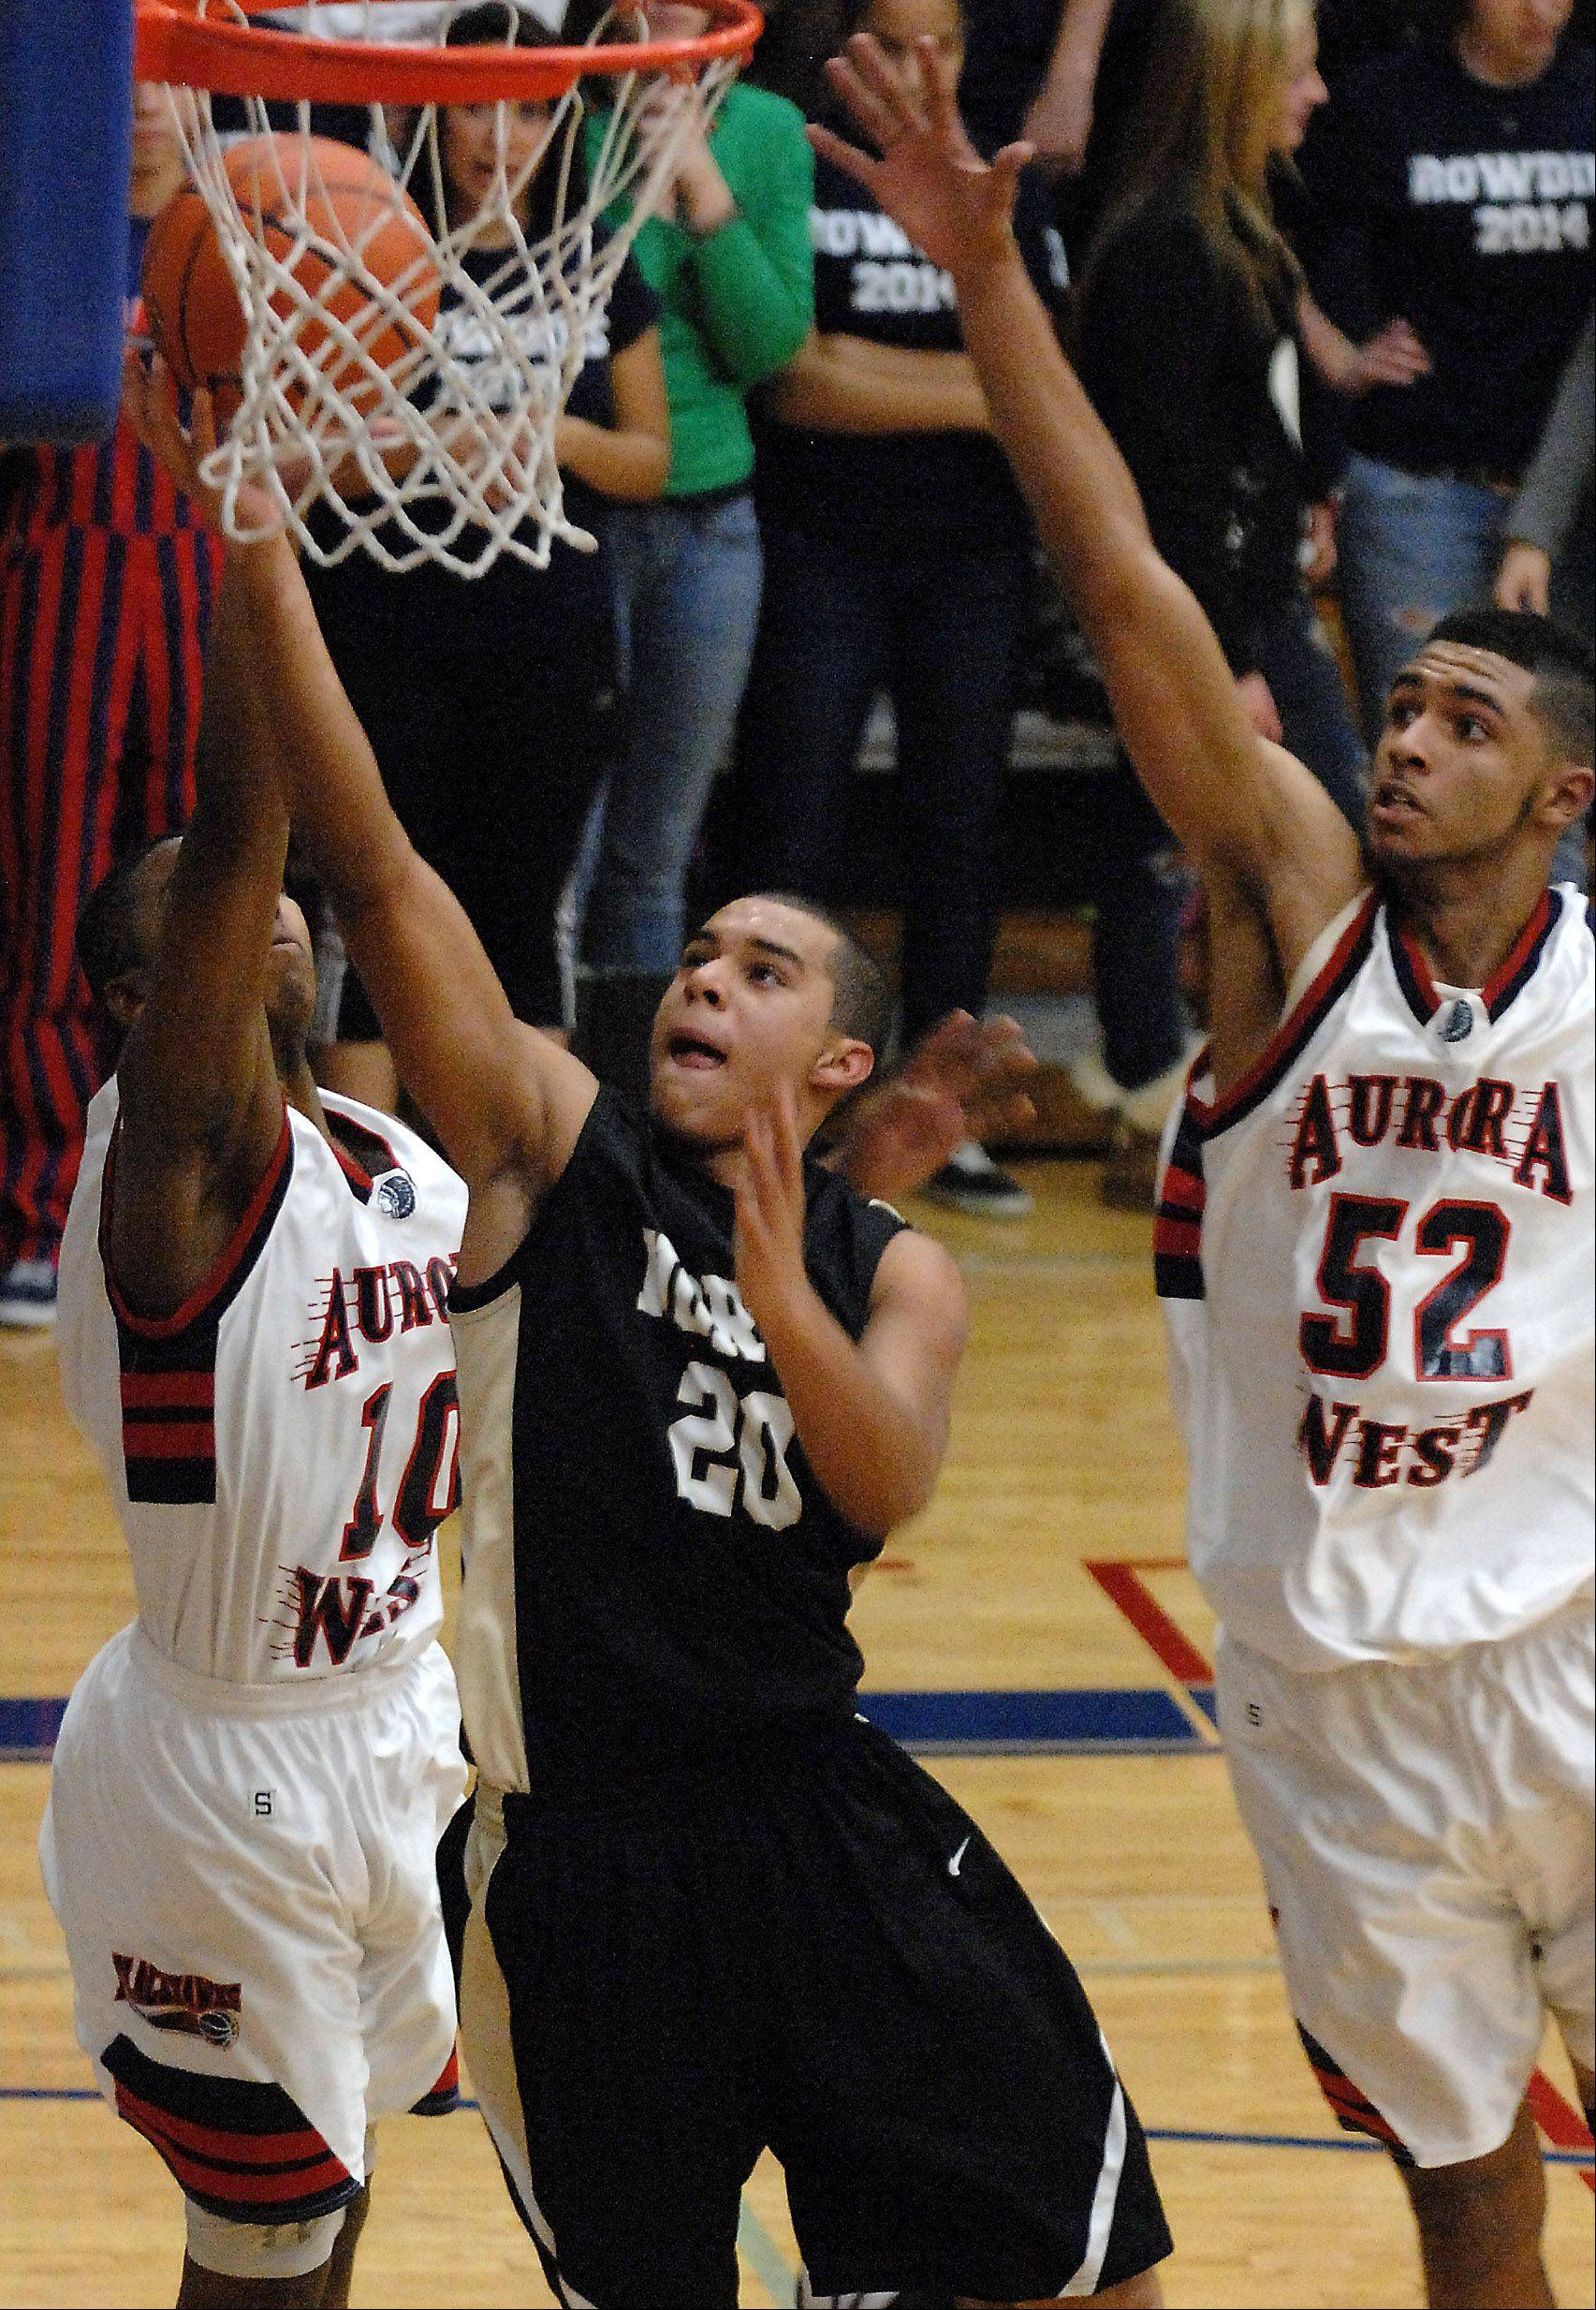 Glenbard North's Kendall Holbert scores between a pair of West Aurora defenders during Friday's game at West Aurora.